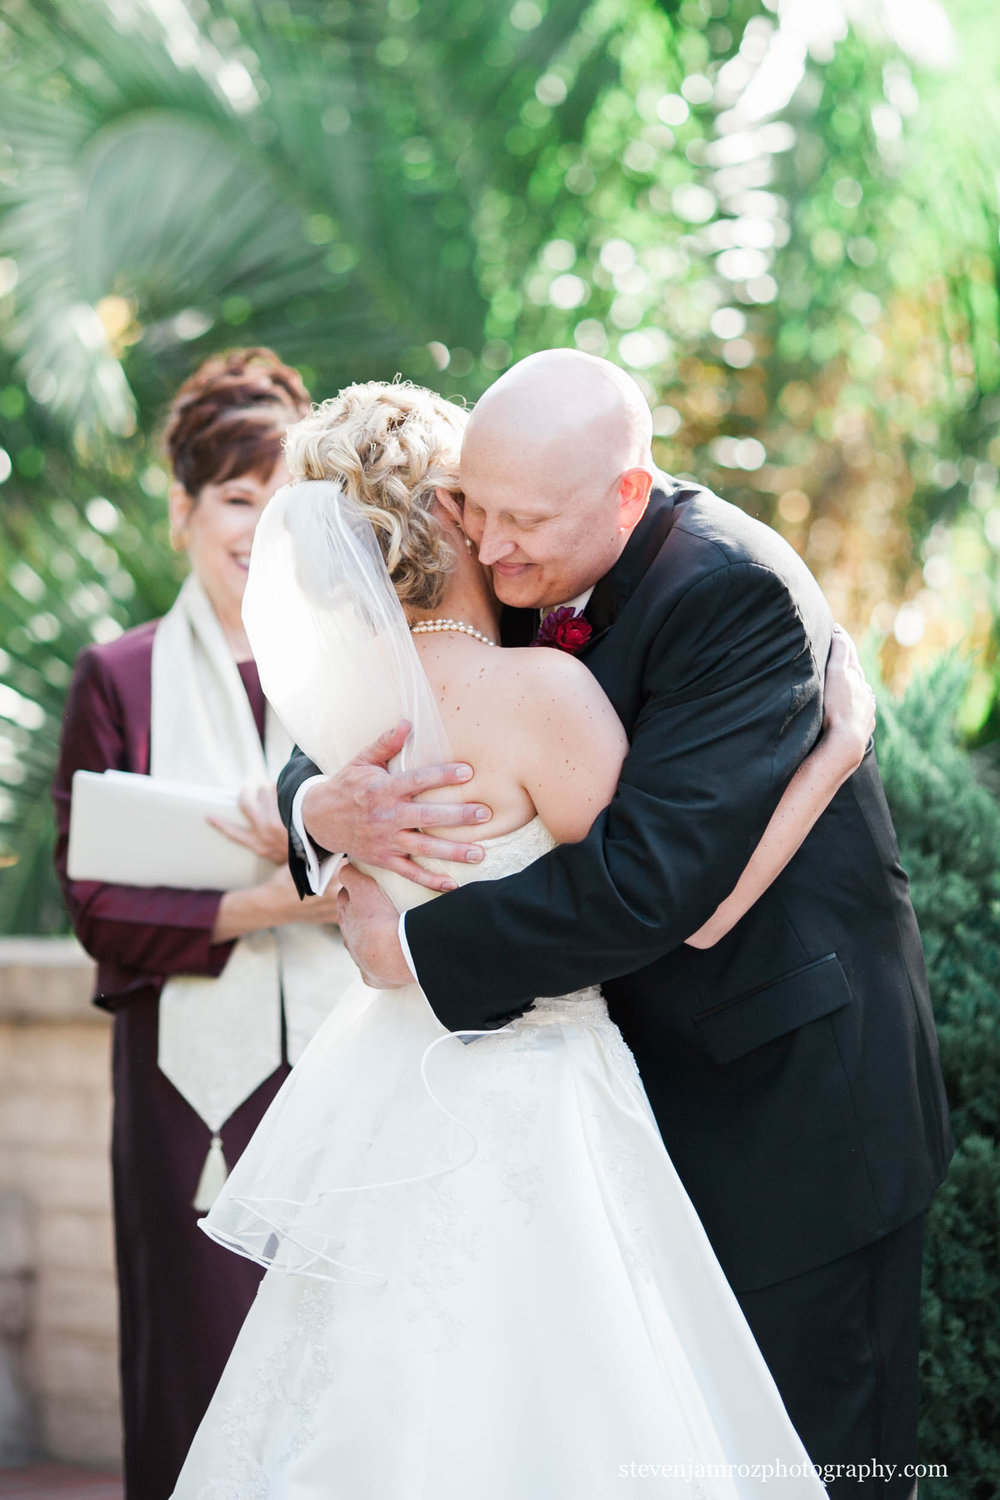 just-married-bride-groom-hug-steven-jamroz-photography-0158.jpg